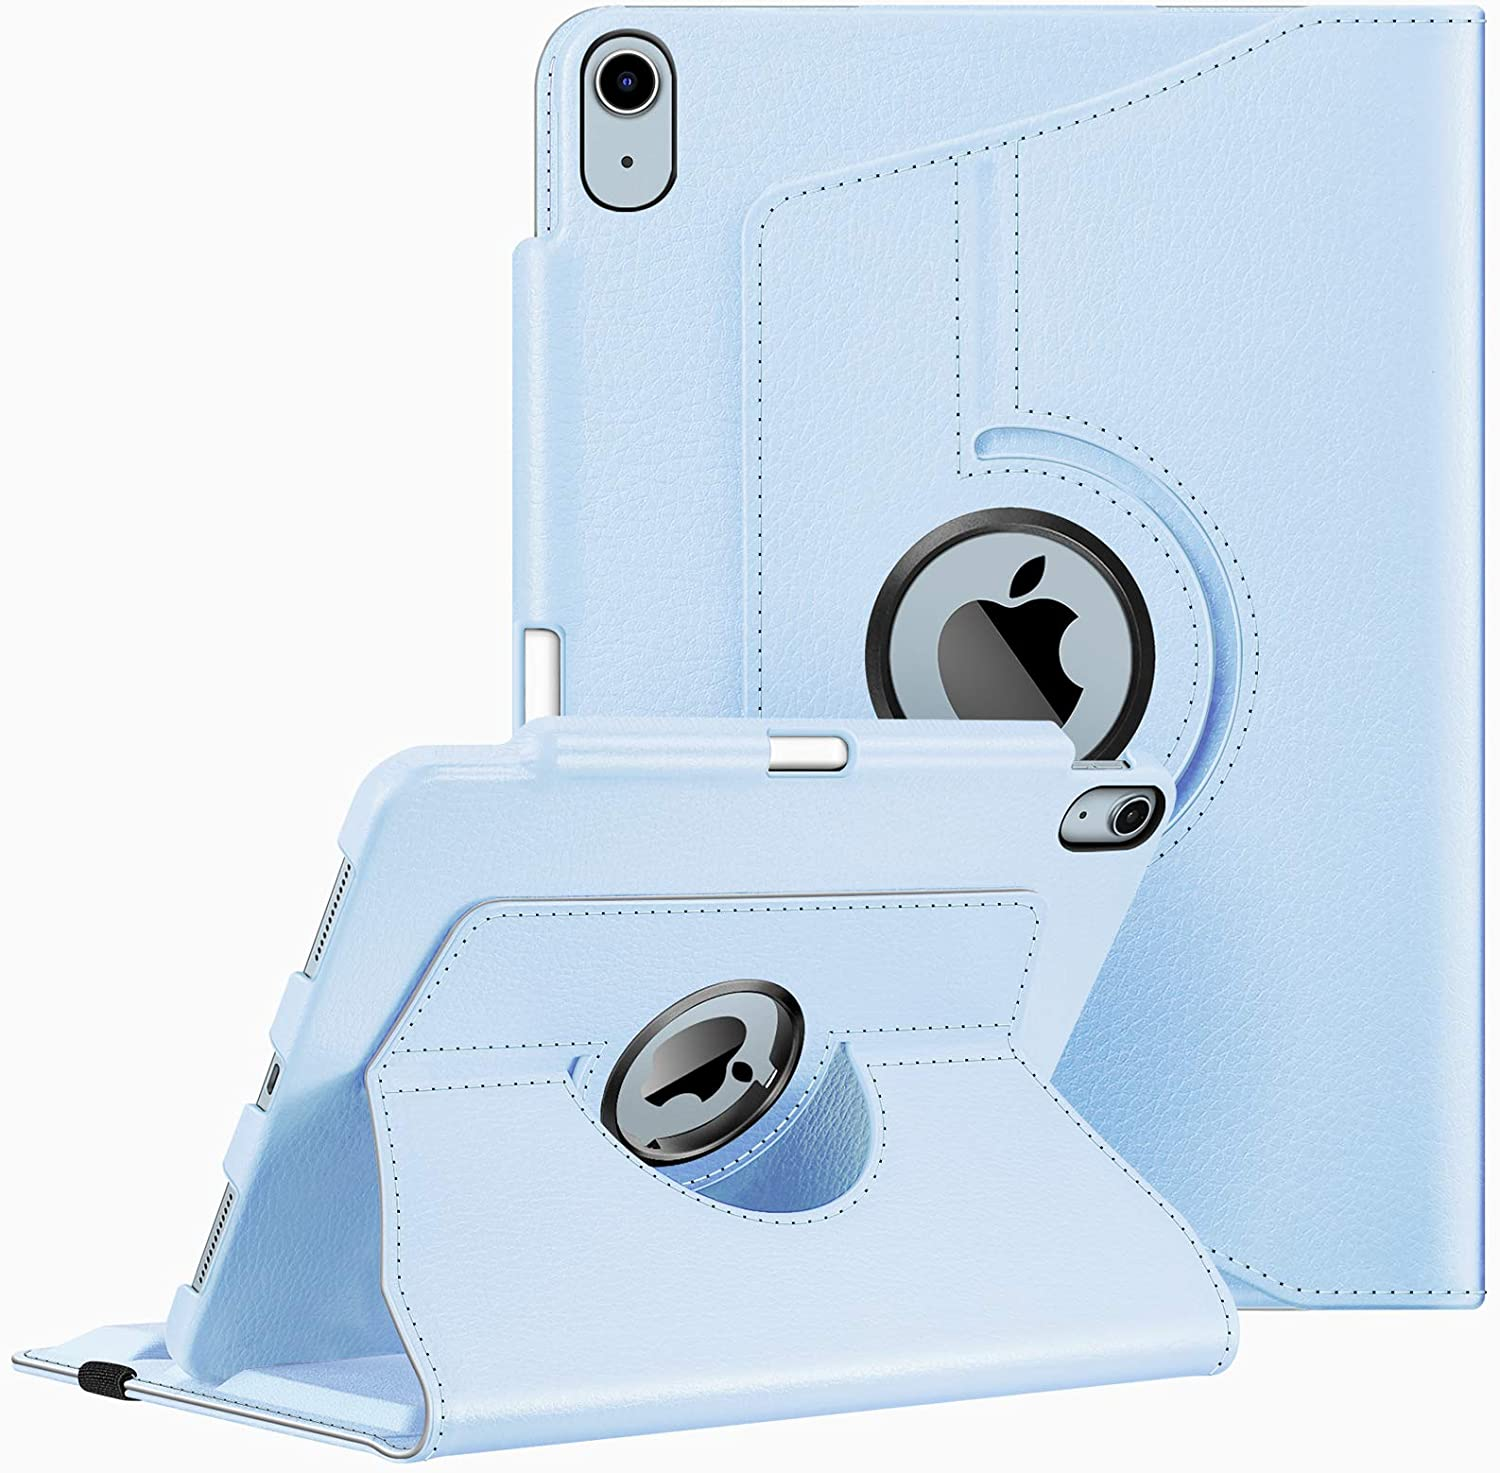 Fintie Case for iPad Air 4 10.9 Inch 2020 with Pencil Holder [Support 2nd Gen Pencil Charging] - 360 Degree Rotating Stand Cover with Auto Sleep/Wake for iPad Air 4th Generation, Sky Blue